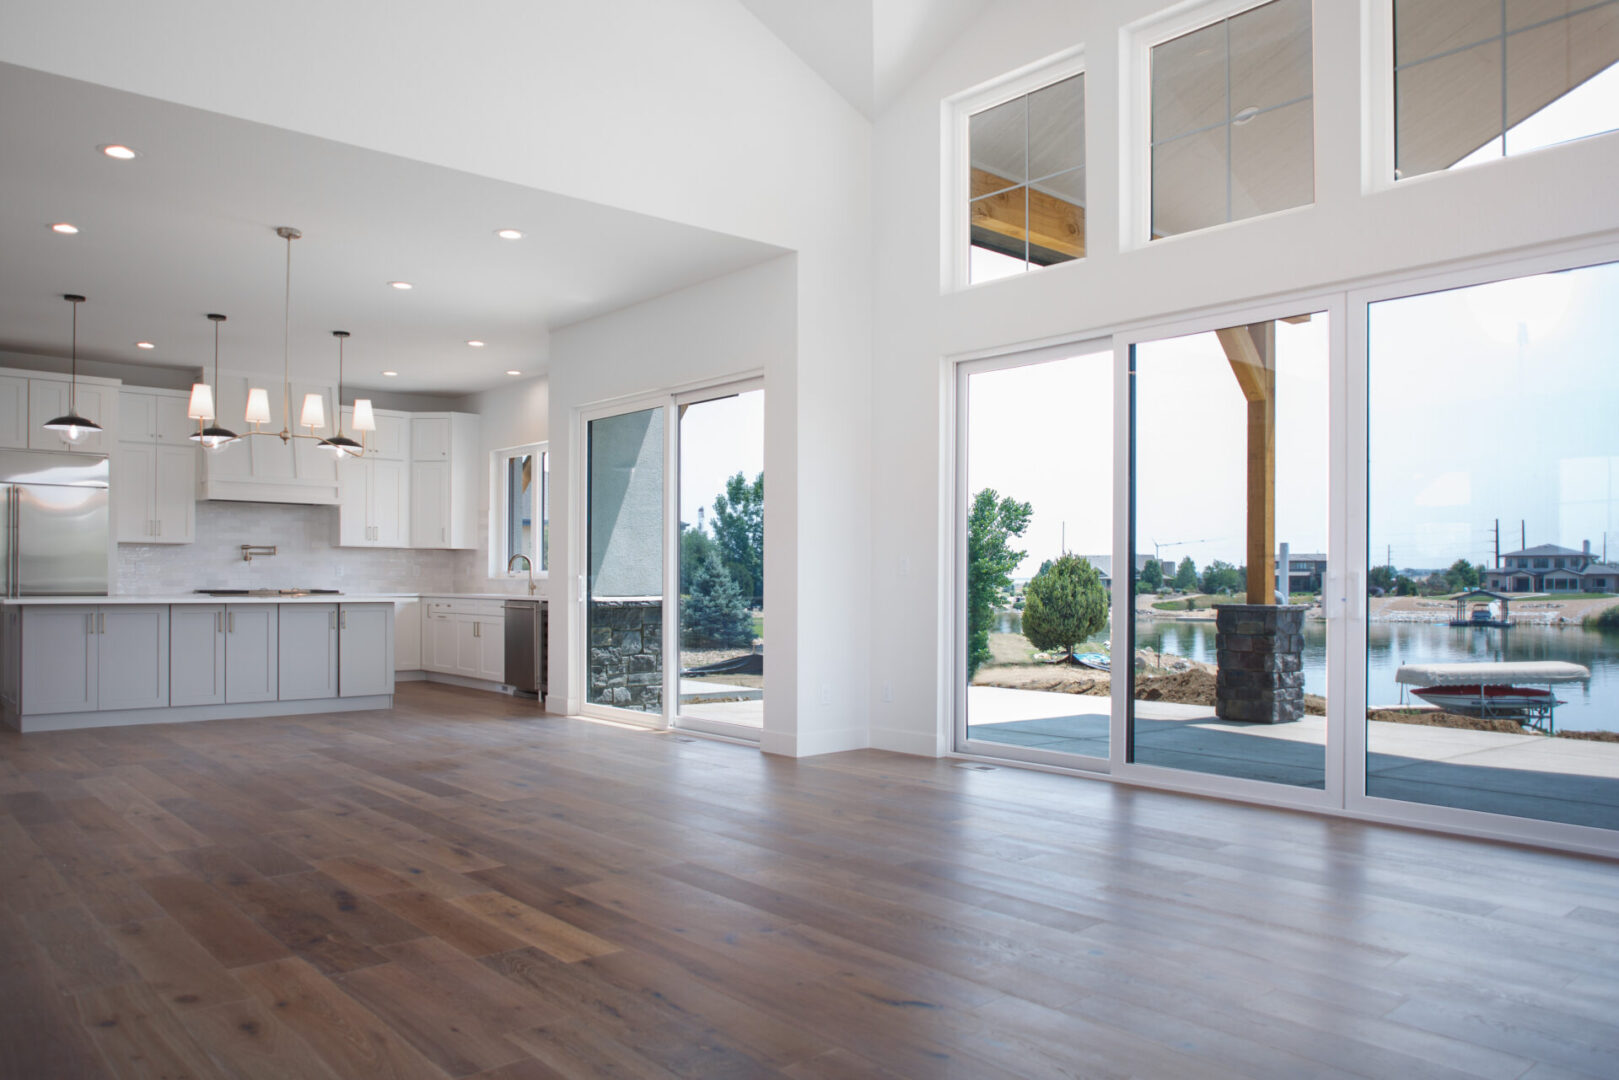 empty room with large windows and kitchen isle